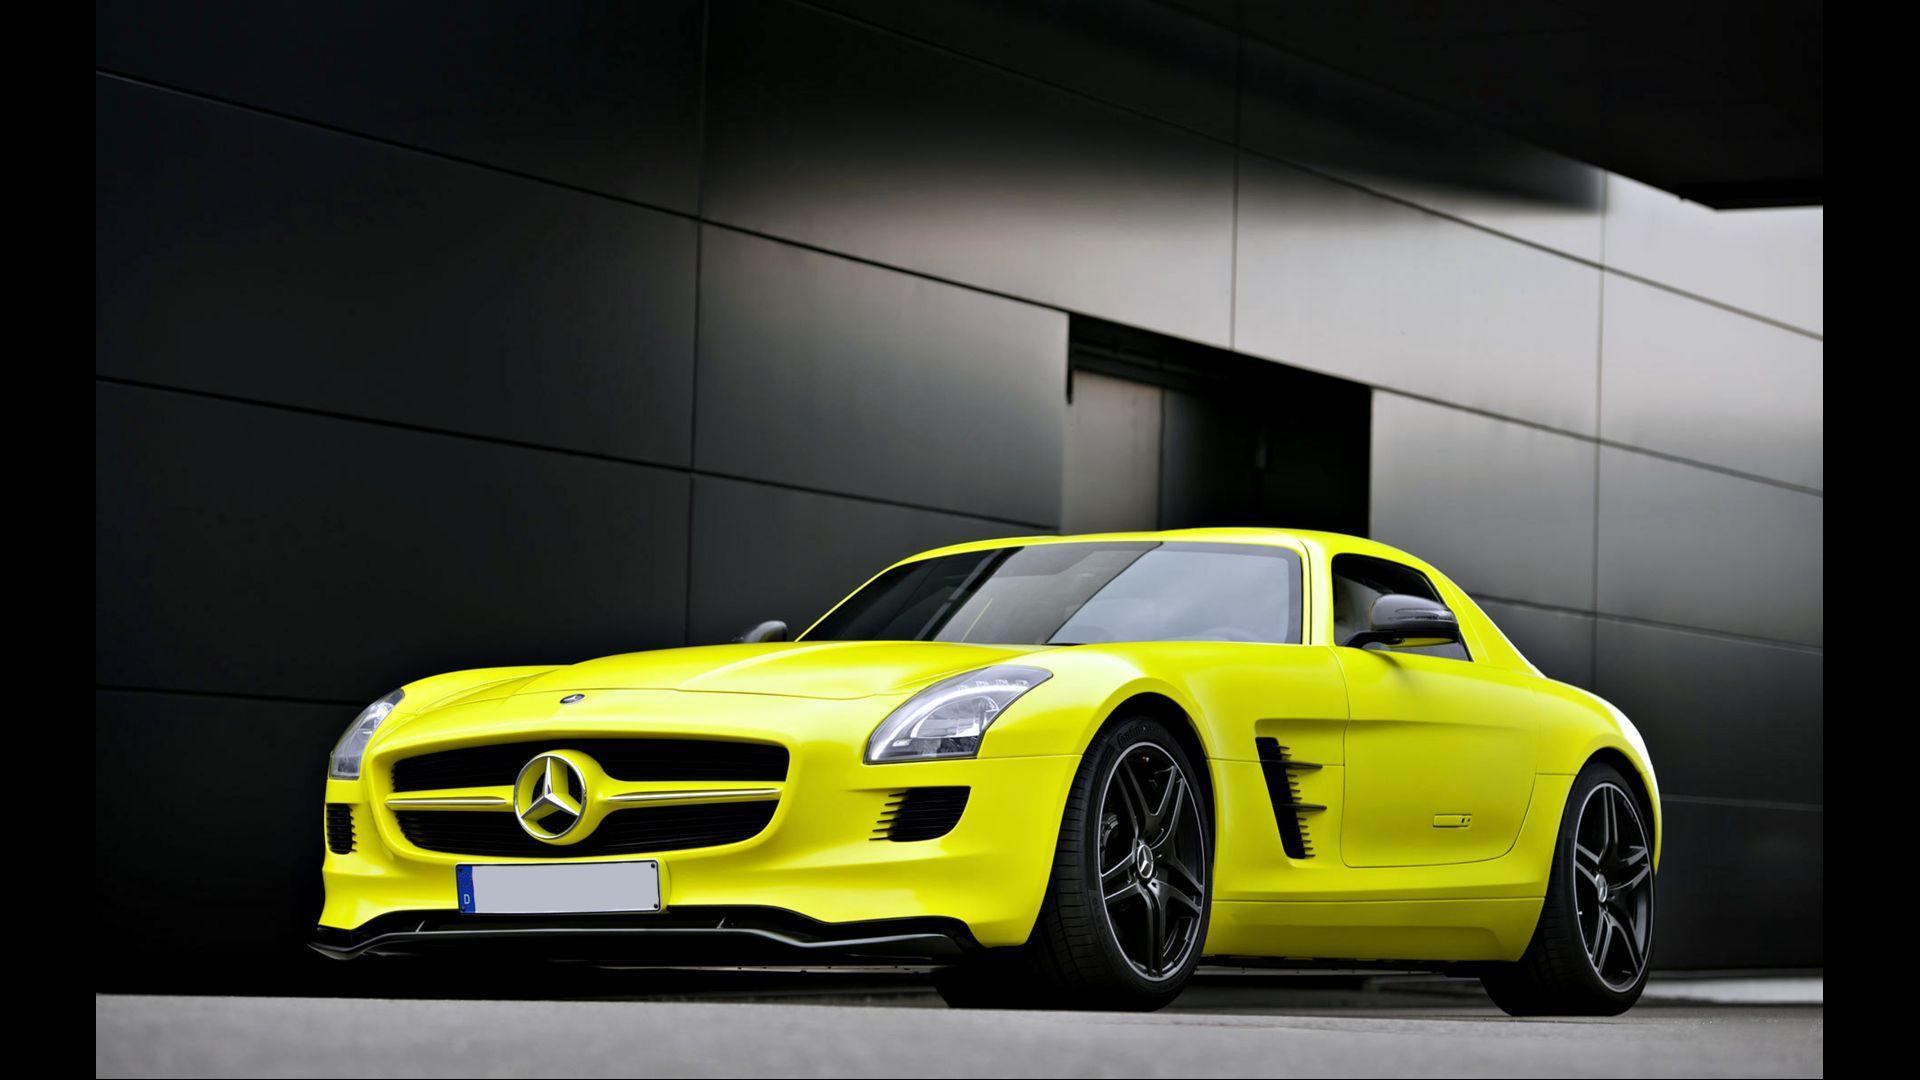 Gold Cars Wallpapers For Android Apk Download